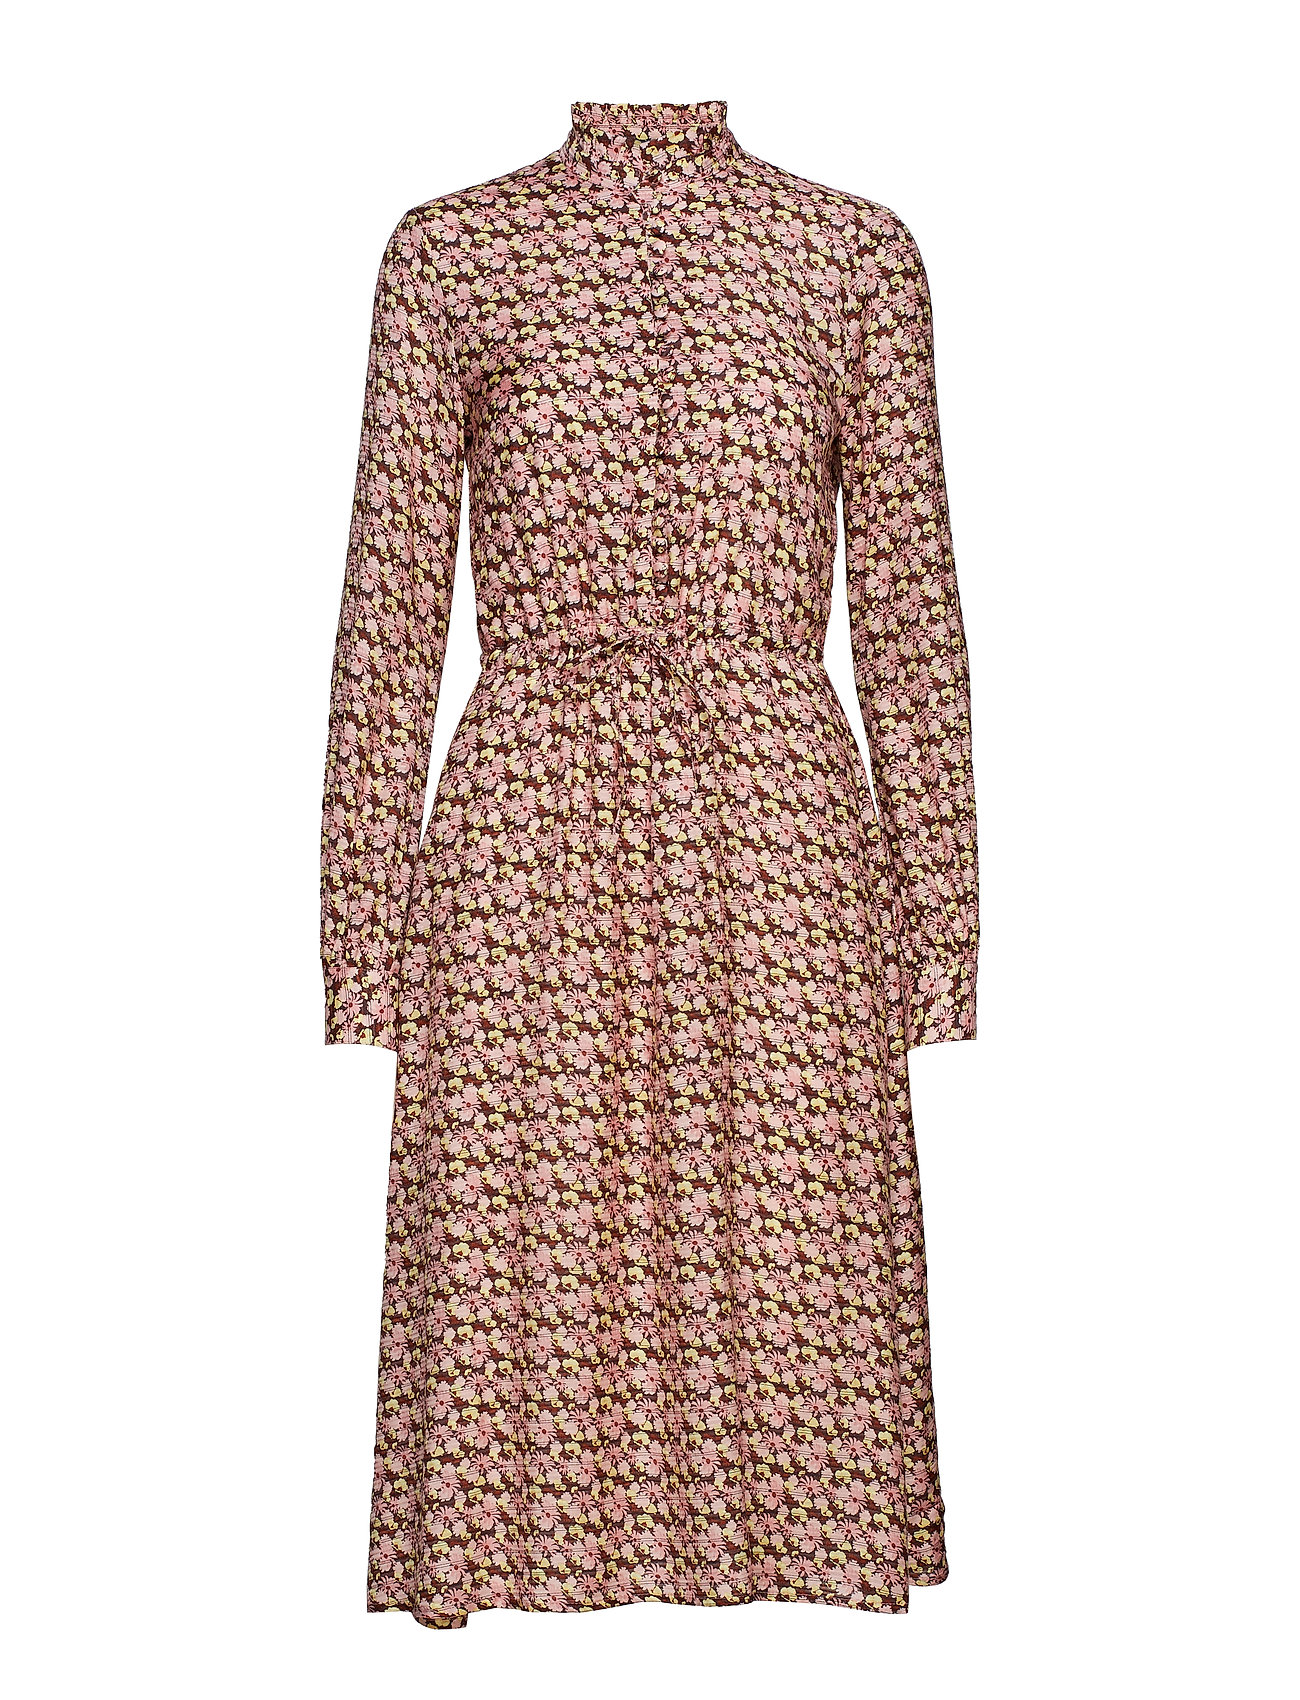 Cille Dress - Birgitte Herskind